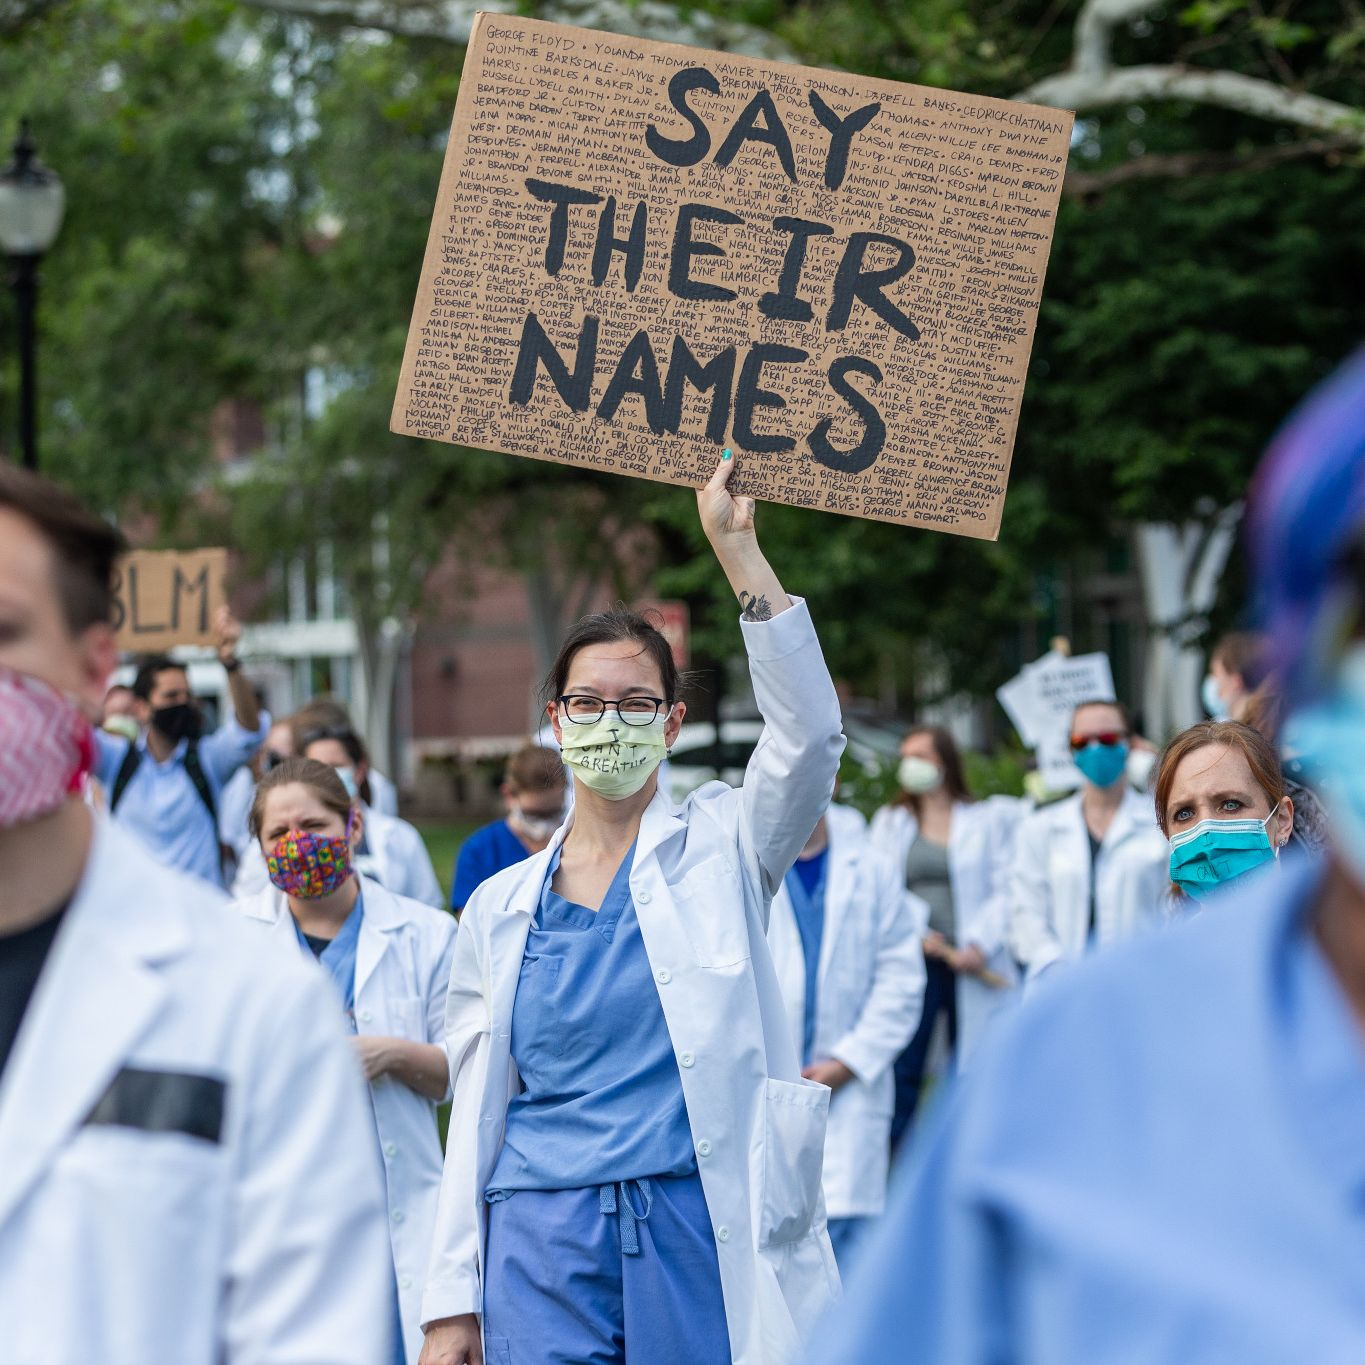 A woman wearing a white coat and mask is holding a sign that says 'say their names'